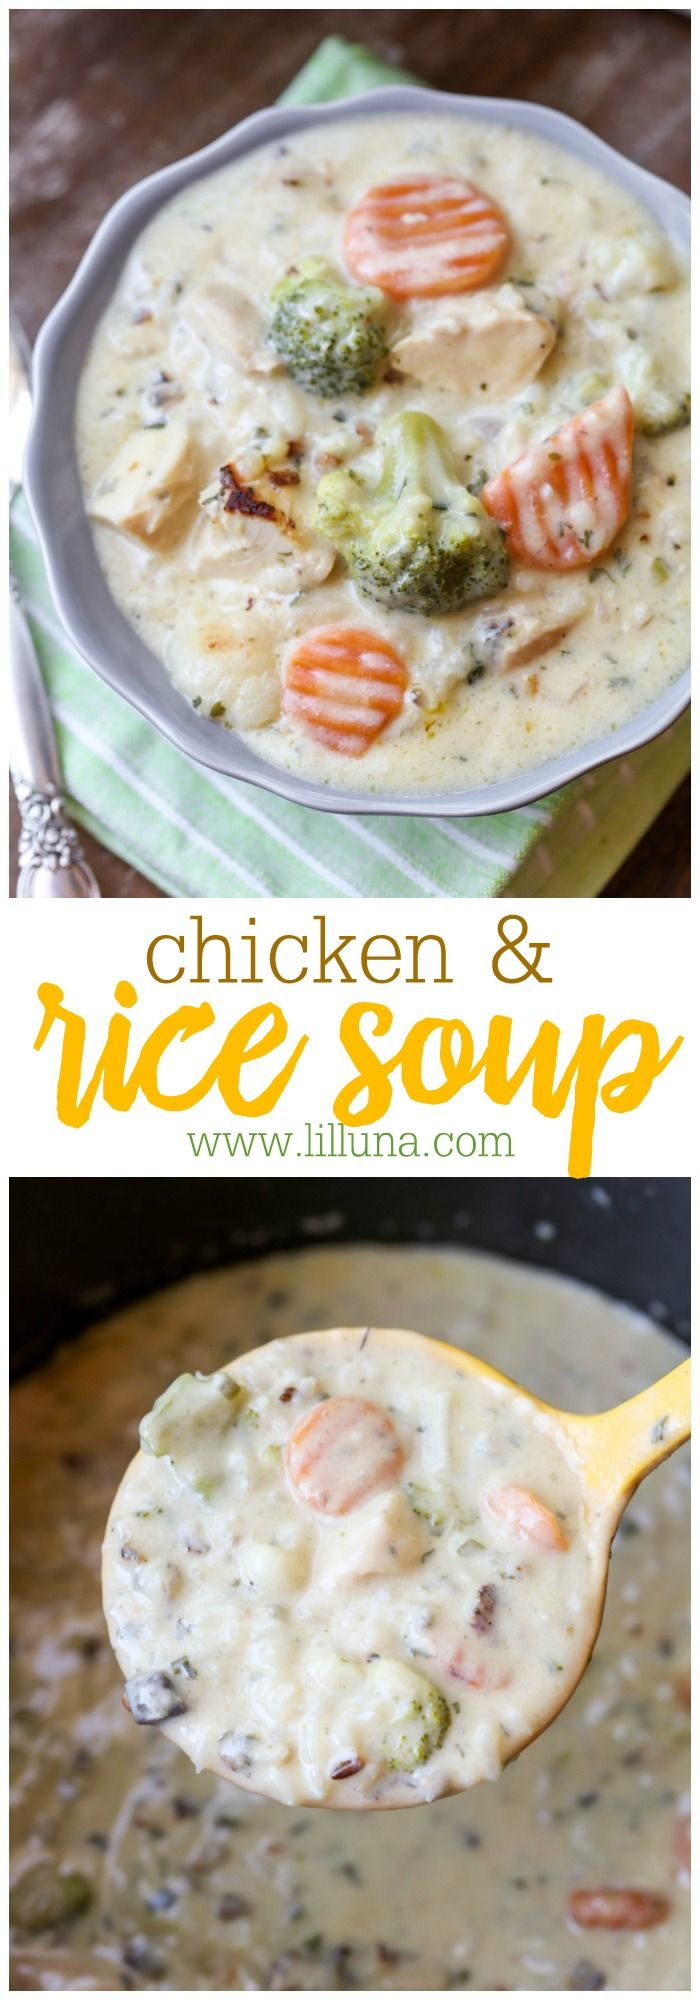 Hearty Chicken and Rice Soup - filled with chicken chunks, veggies, cream cheese, spices and more. It's delicious and perfect for cooler weather!